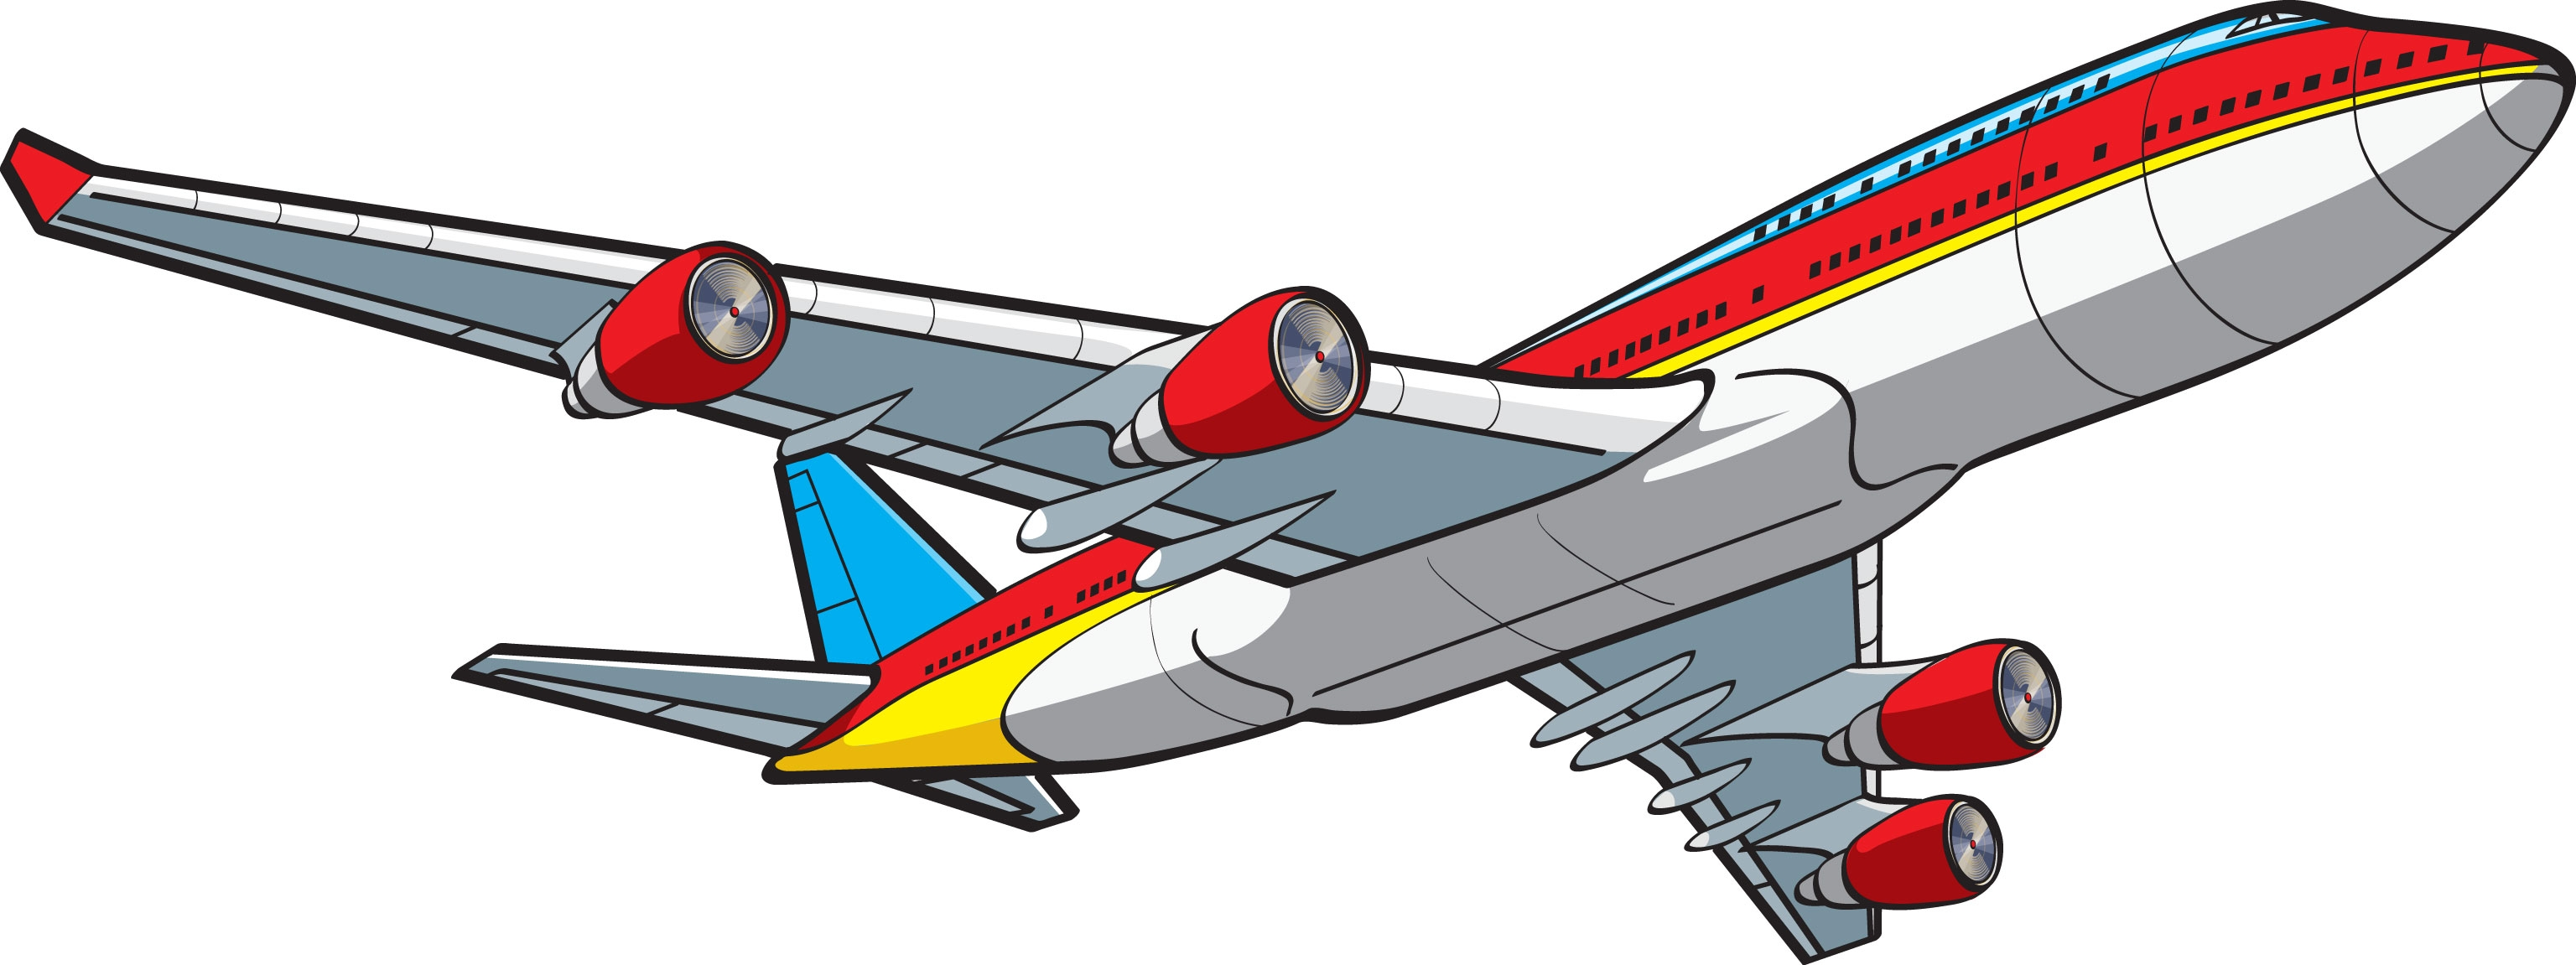 Jet clipart toy Cliparts Flying Clipart Jet Jet